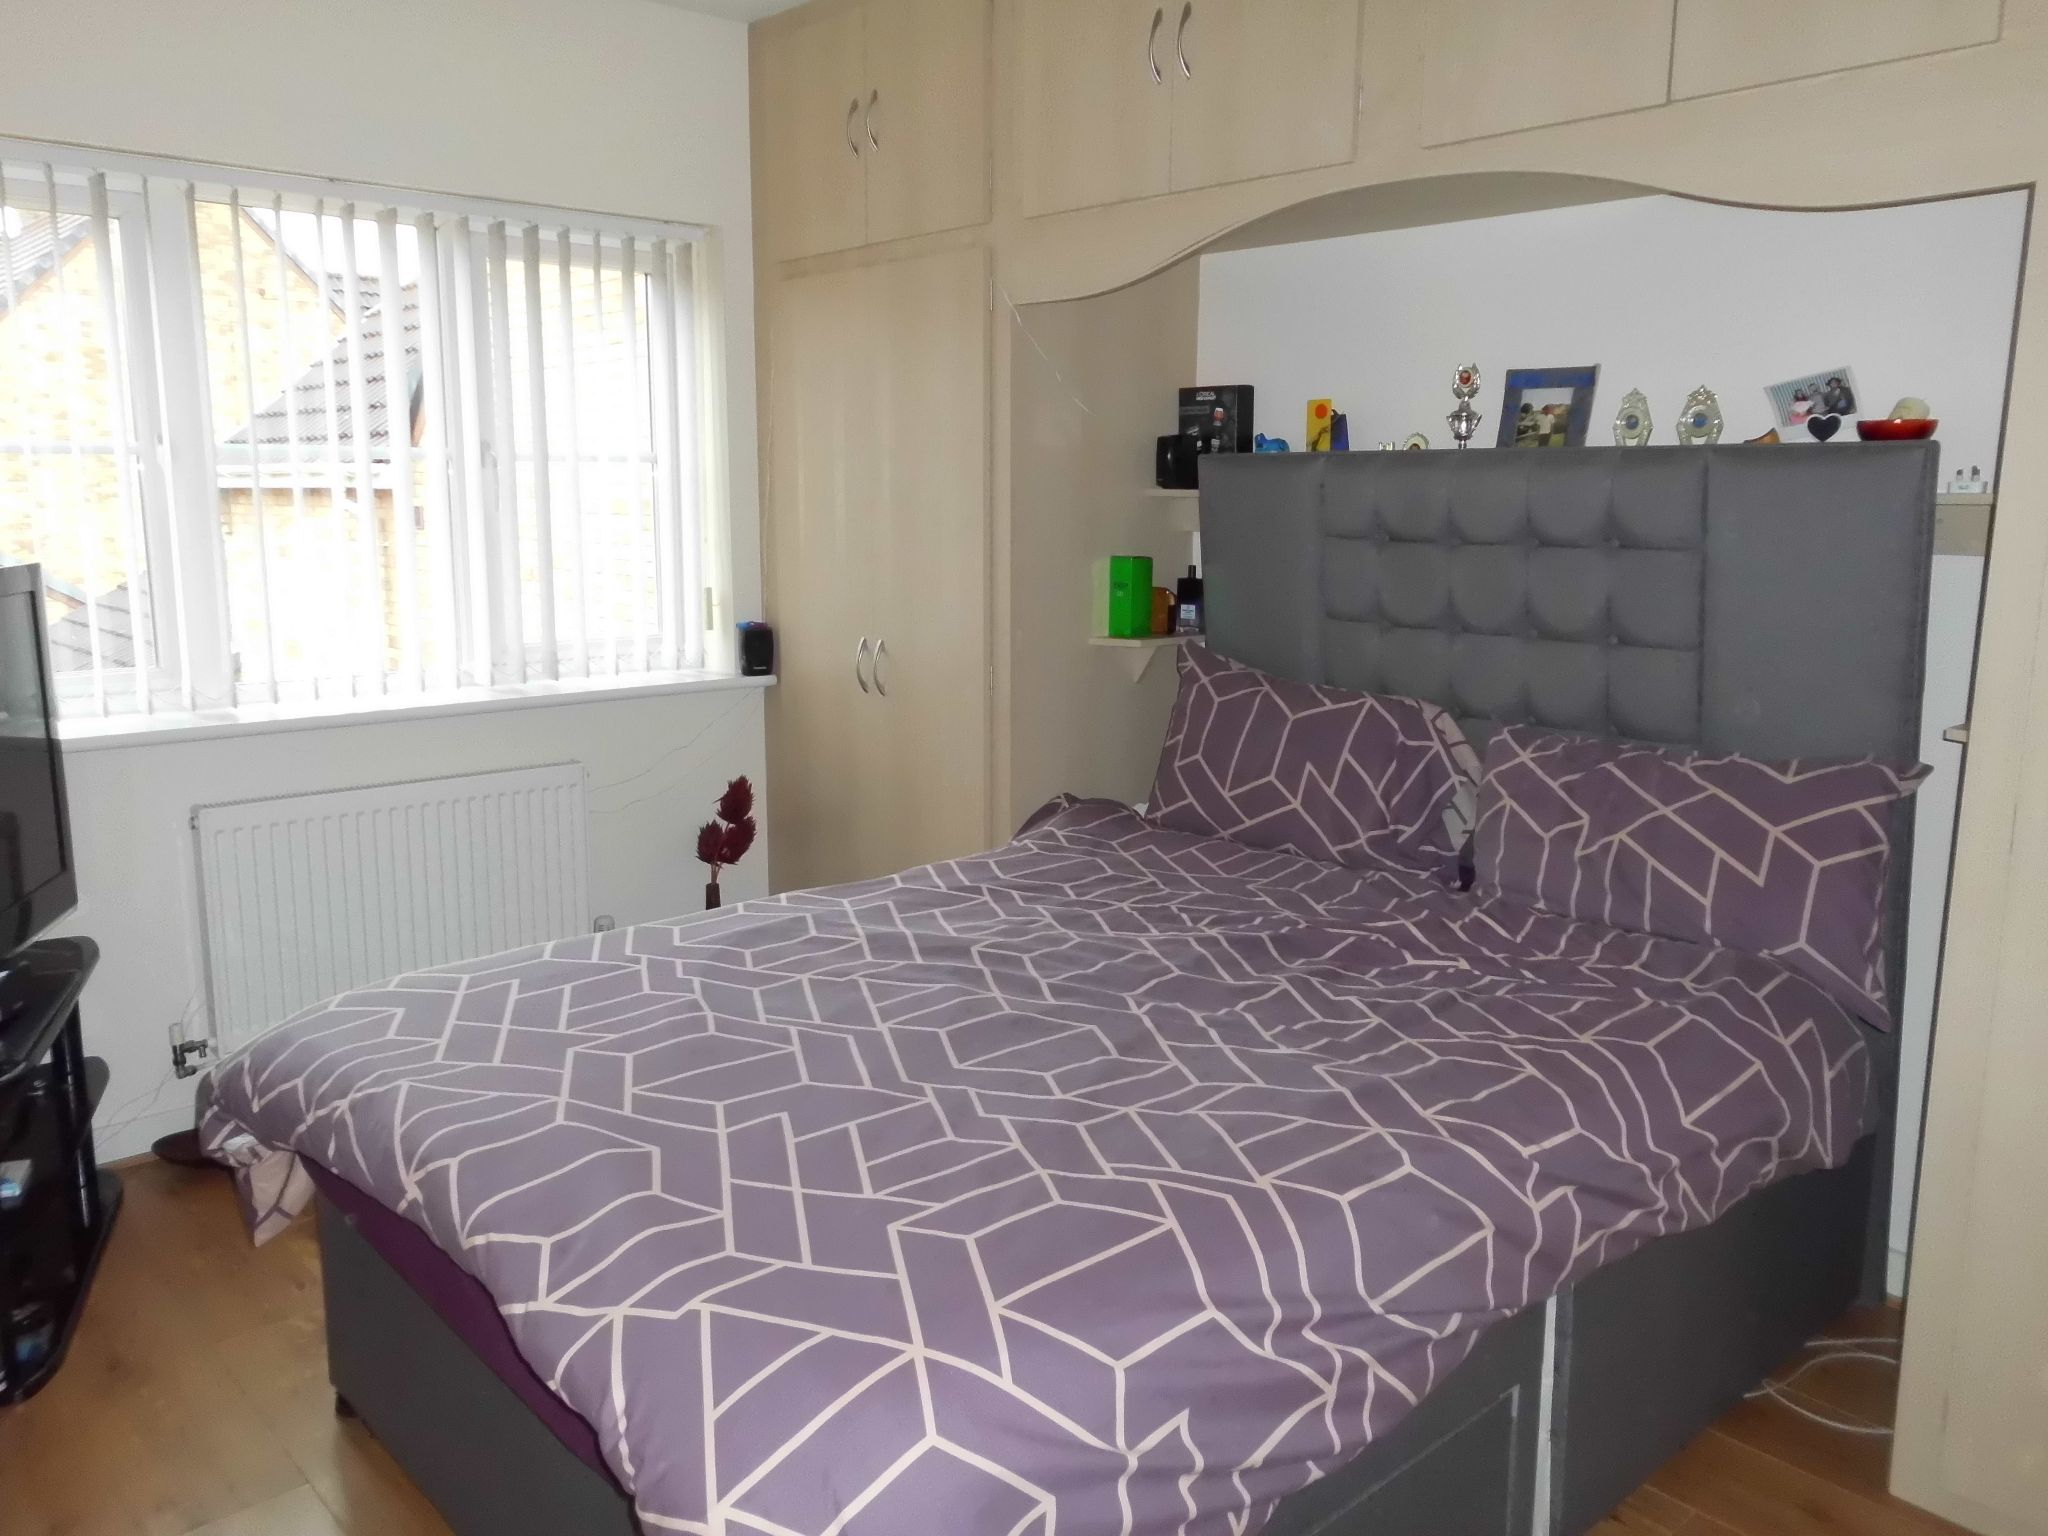 4 bedroom detached house SSTC in Leicester - Photograph 10.